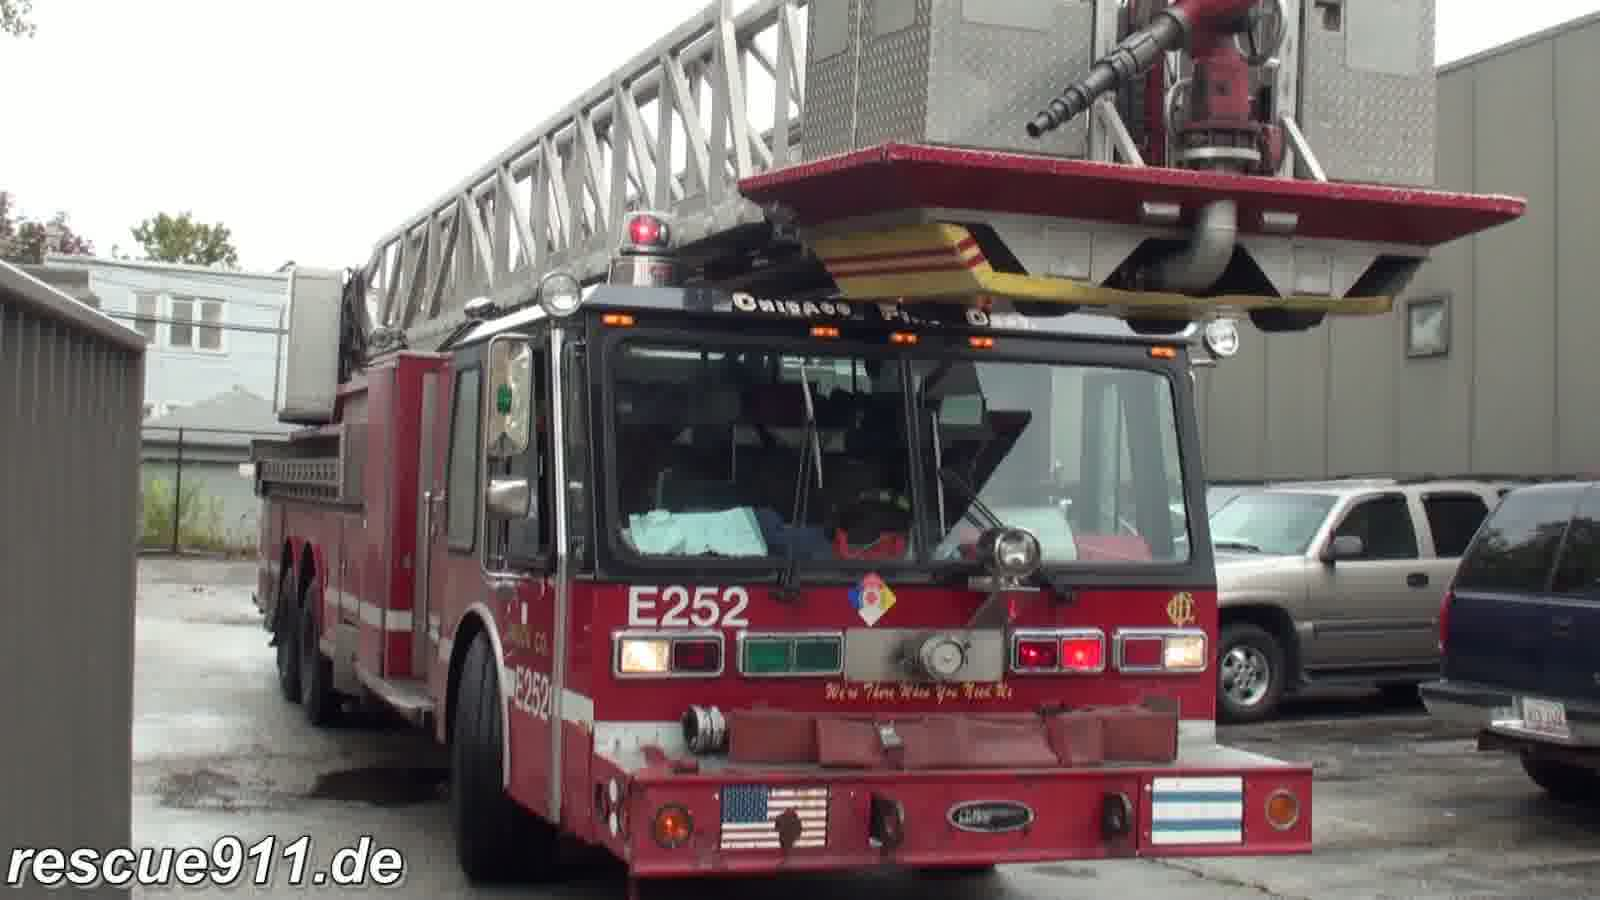 INSIDE VIEW - Tower ladder 14 CFD (stream)